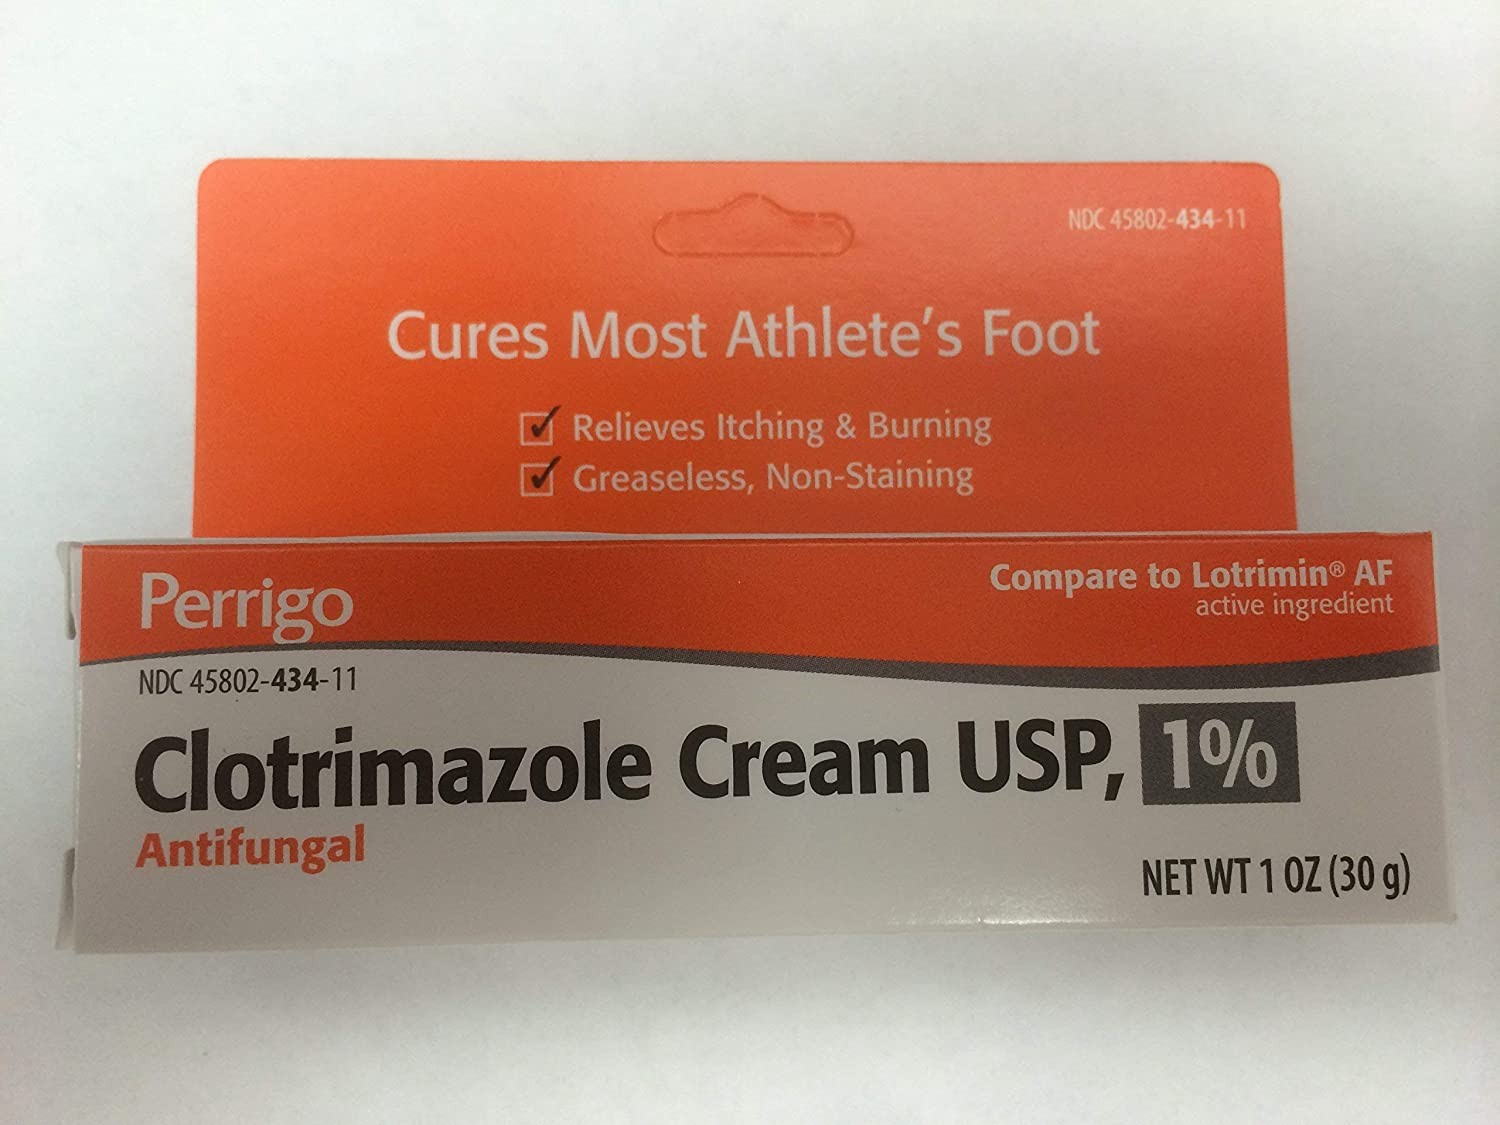 Clotrimazole Cream USP 1% 1 Oz Foot 2 Cures Athlete's Most Popular brand in Wholesale the world